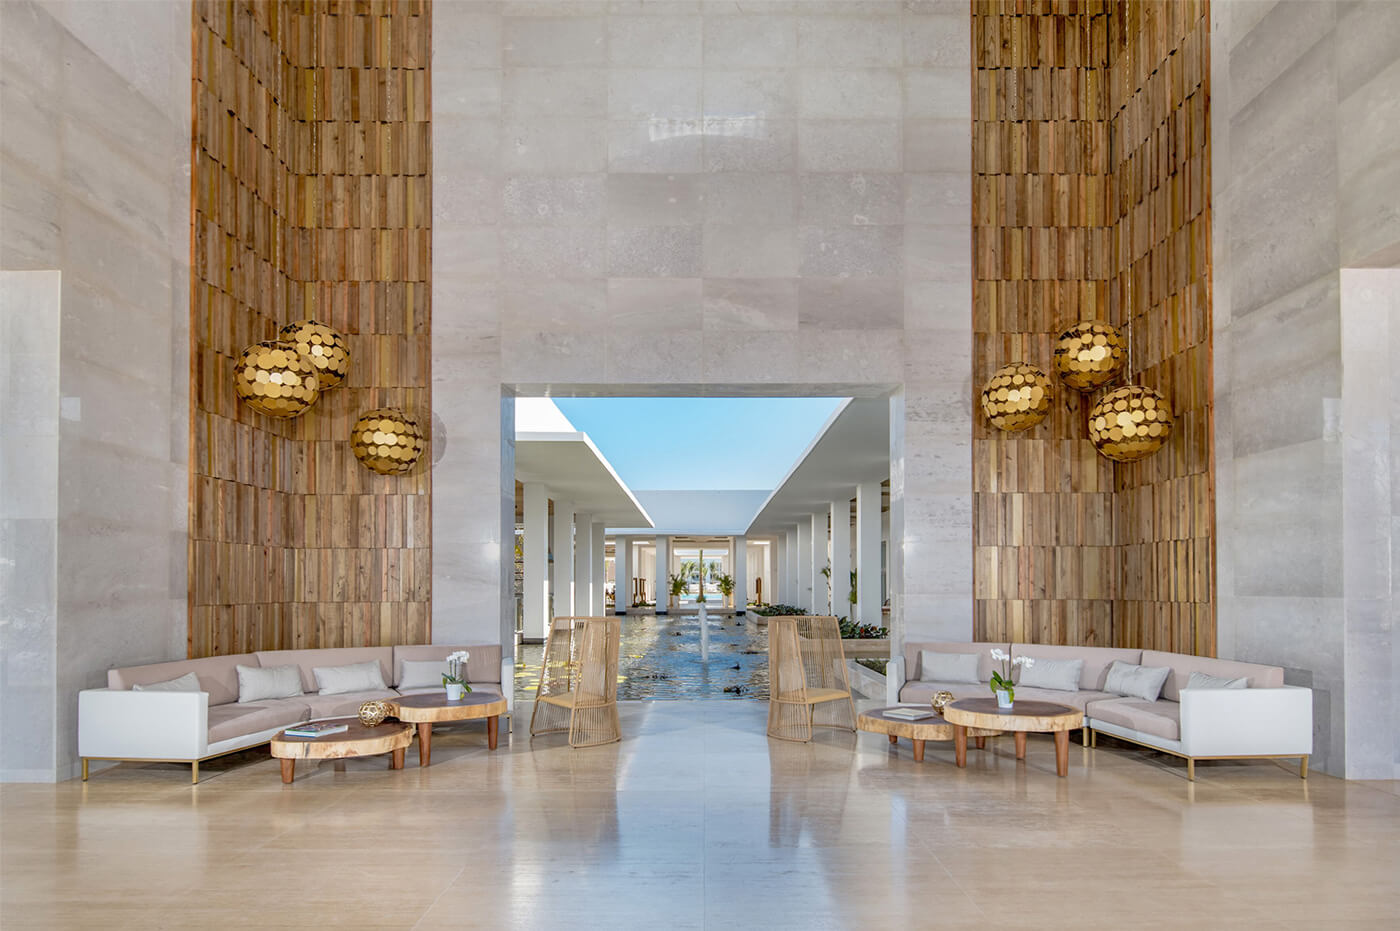 The Grand Reserve At Paradisus Palma Real Opens This Past Weekend As The Newest Addition To Meliá Hotels International